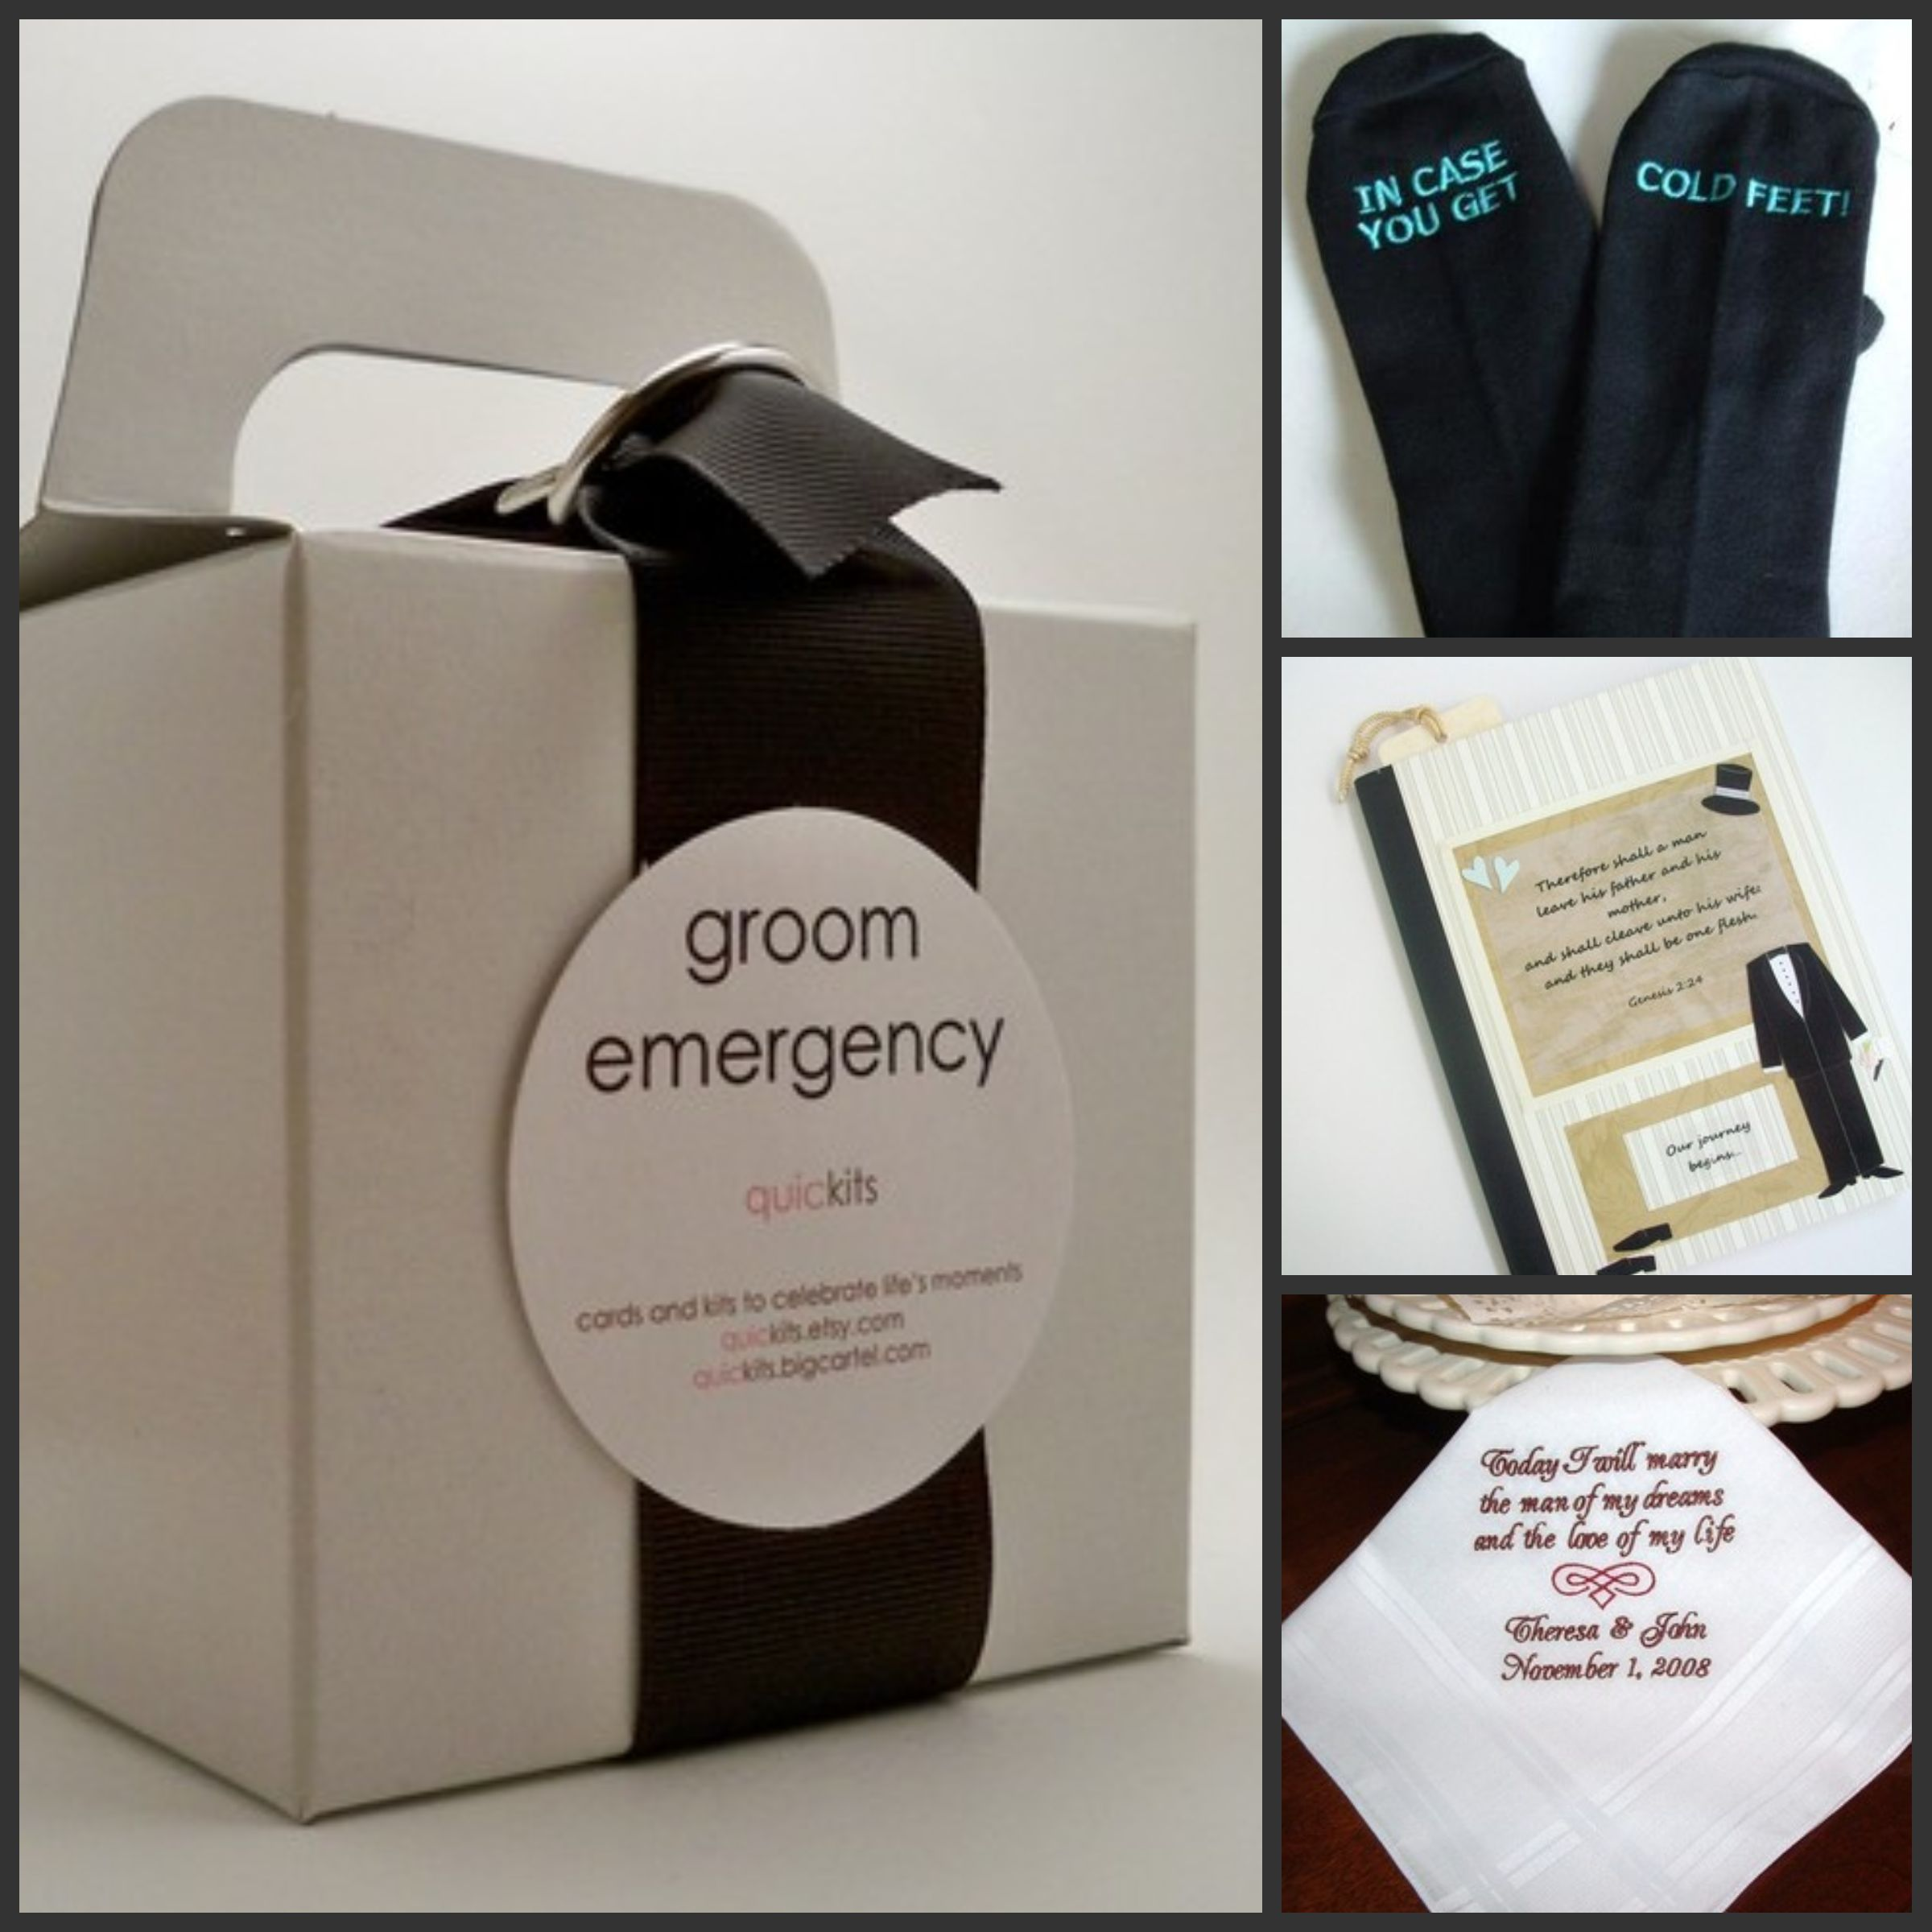 Wedding Day Gift To Groom From Bride : personal gifts for your groom clockwise from left groom emergency kit ...